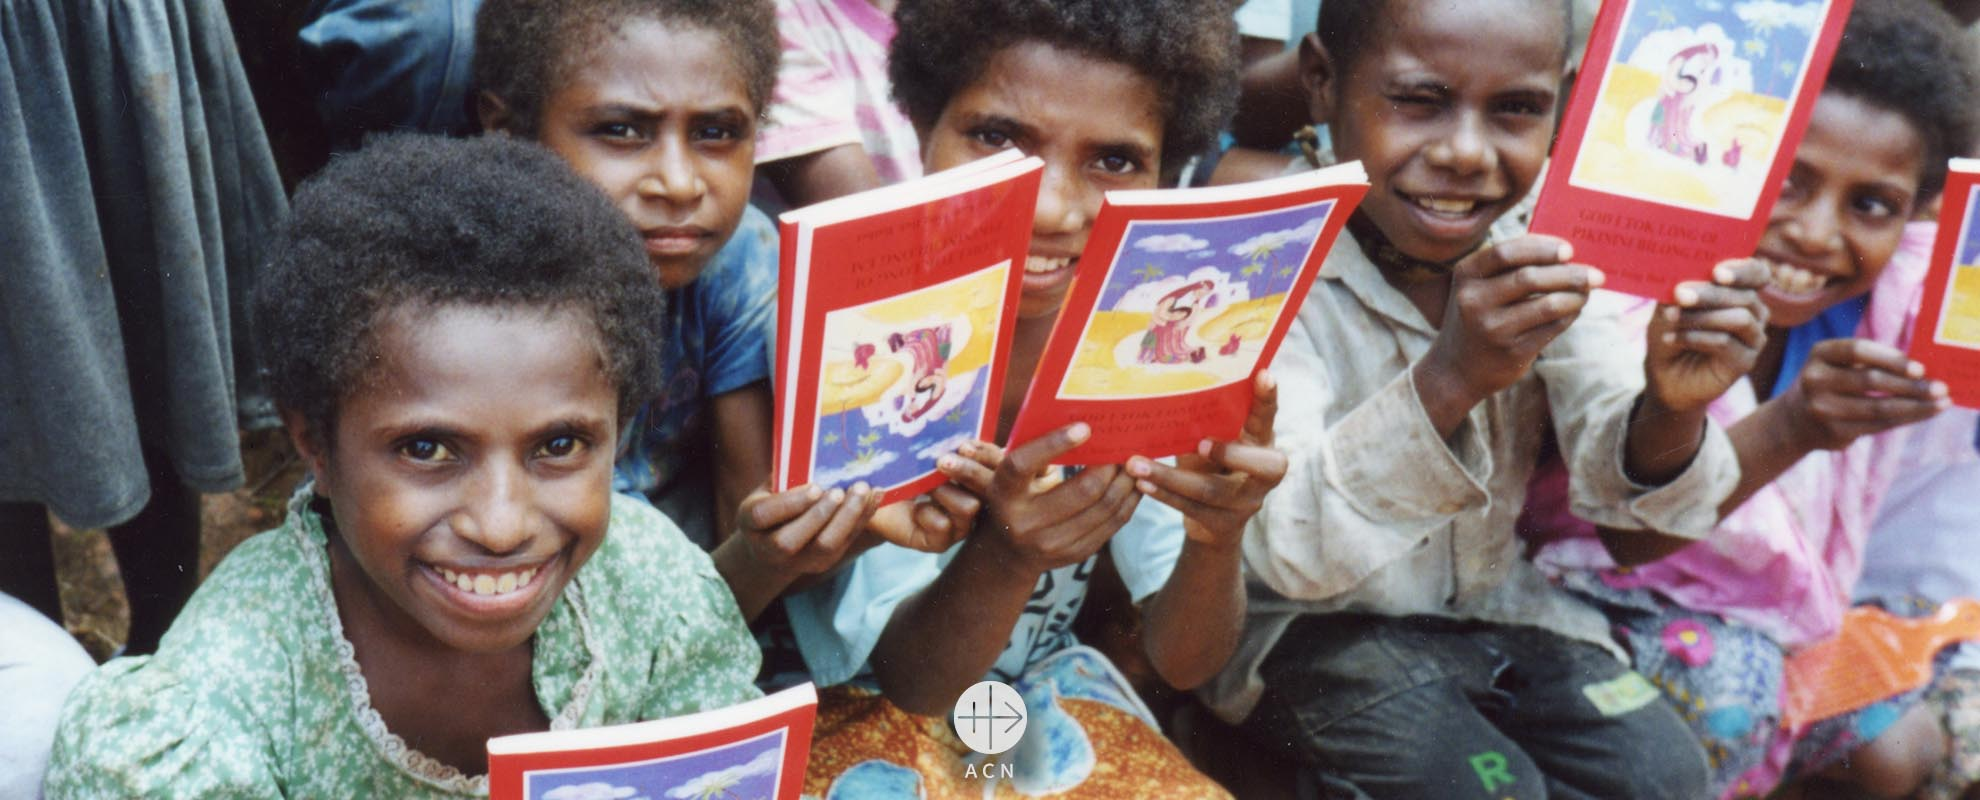 A secret global bestseller turns 40 Aid to the Church in Need's Children's Bible celebrates anniversary